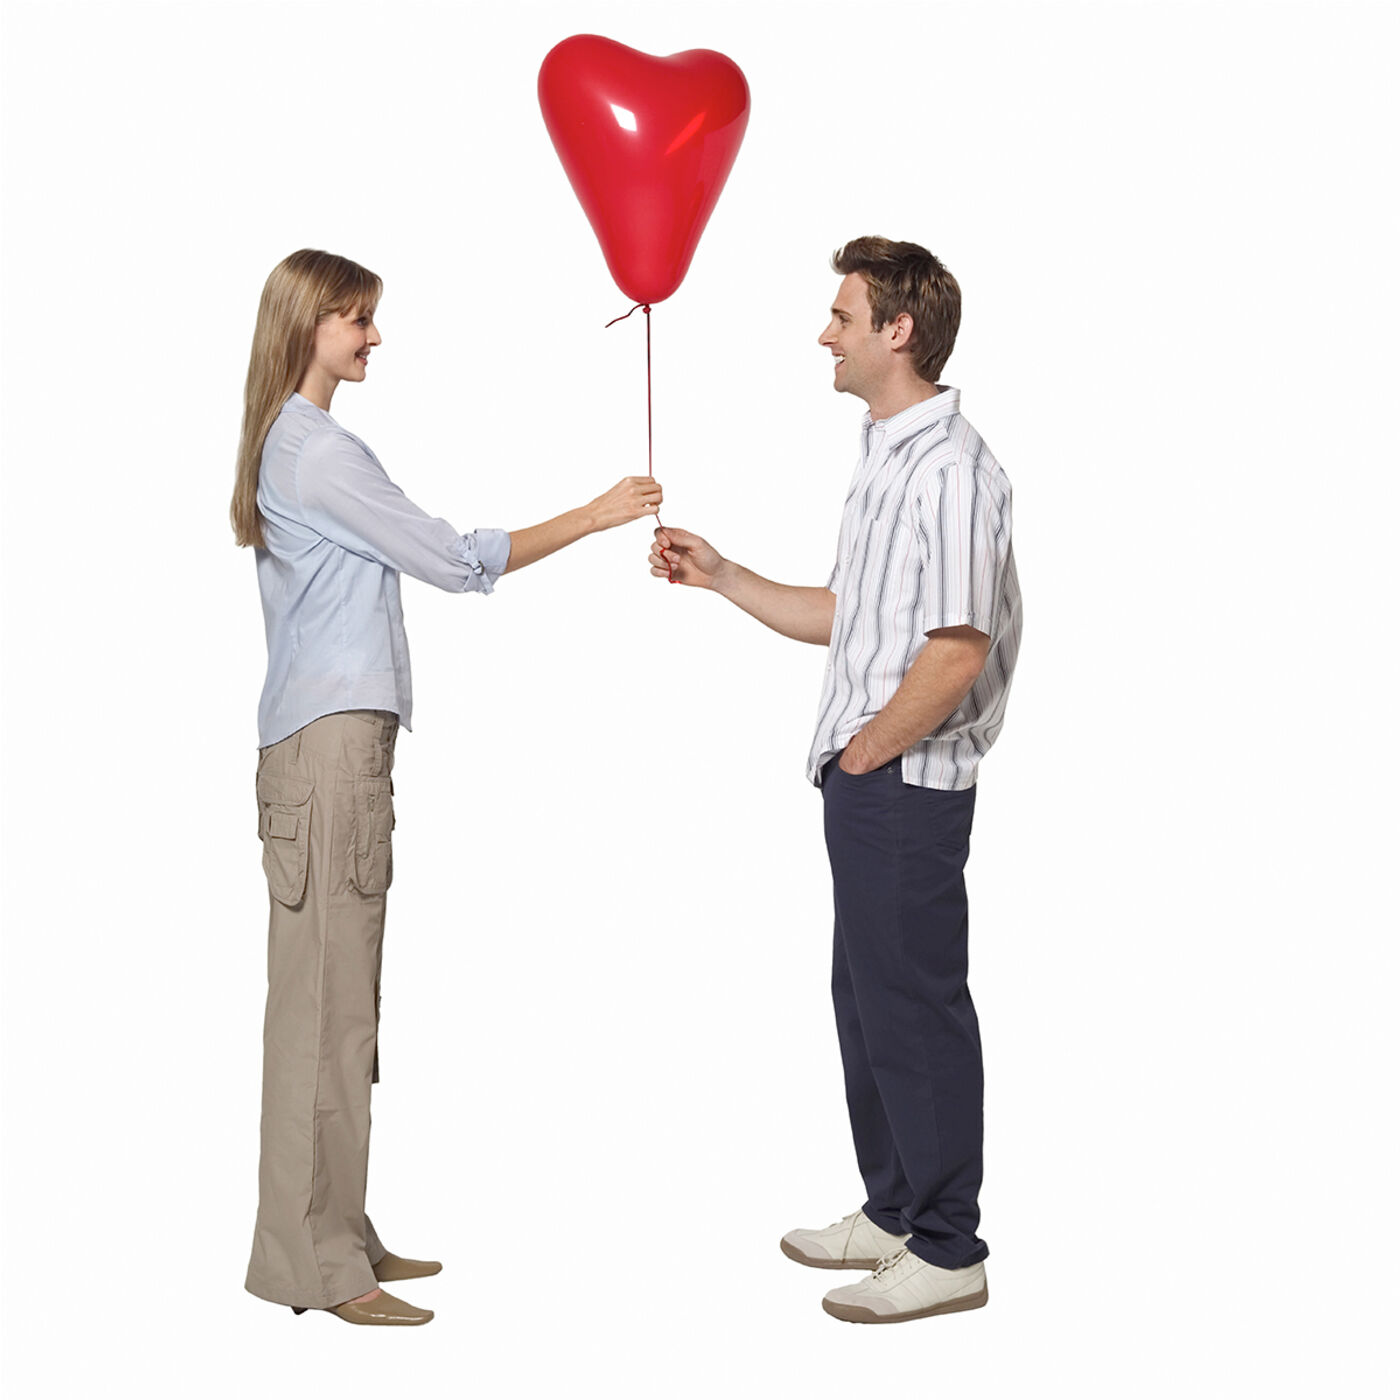 Ep. 74 - Conversing with Balloons